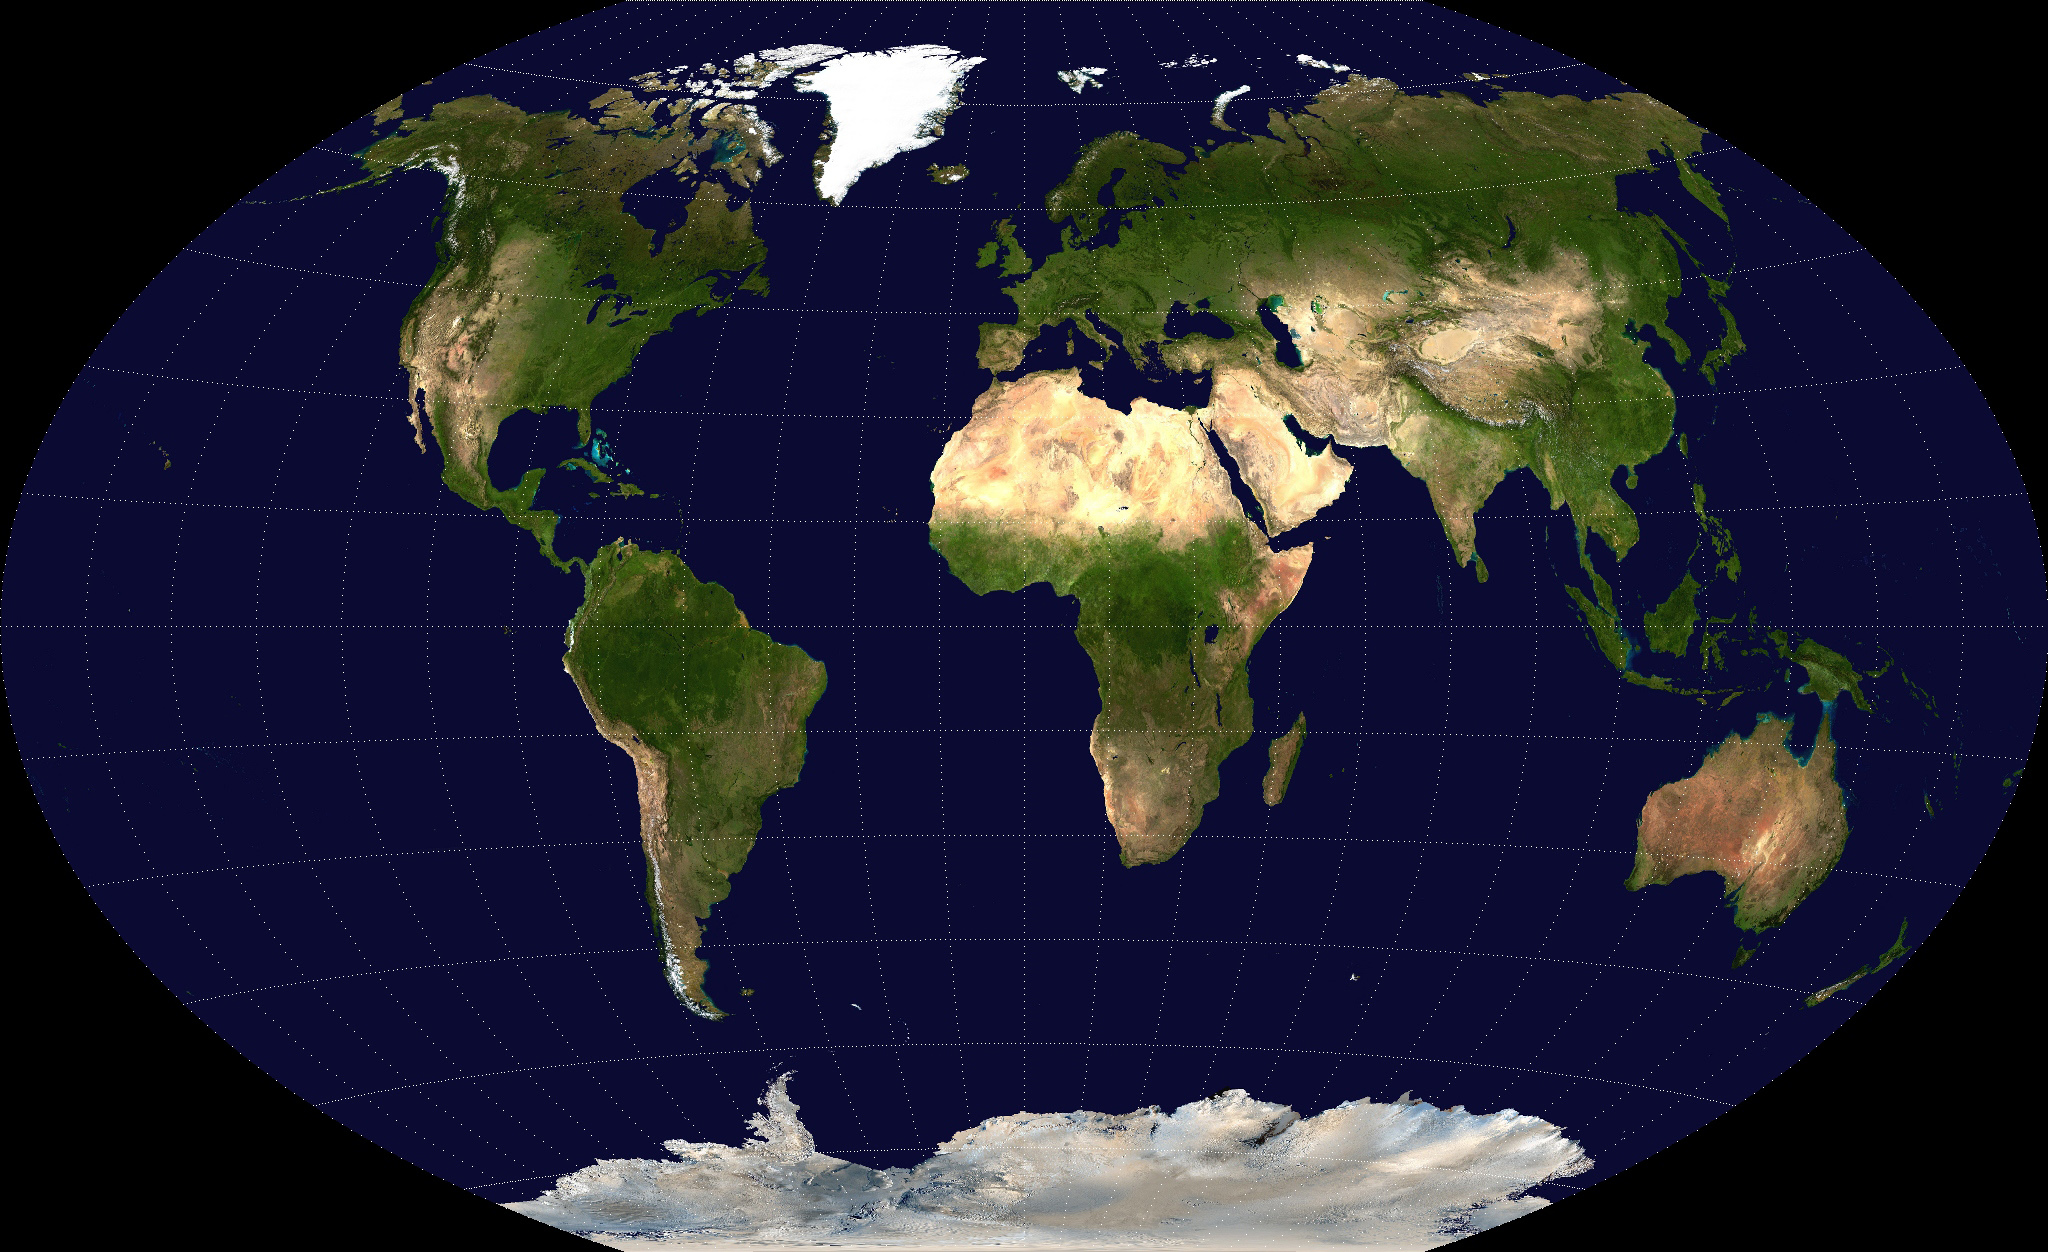 Detailed Satellite Map Of The World World Mapsland Maps Of - The world satellite image